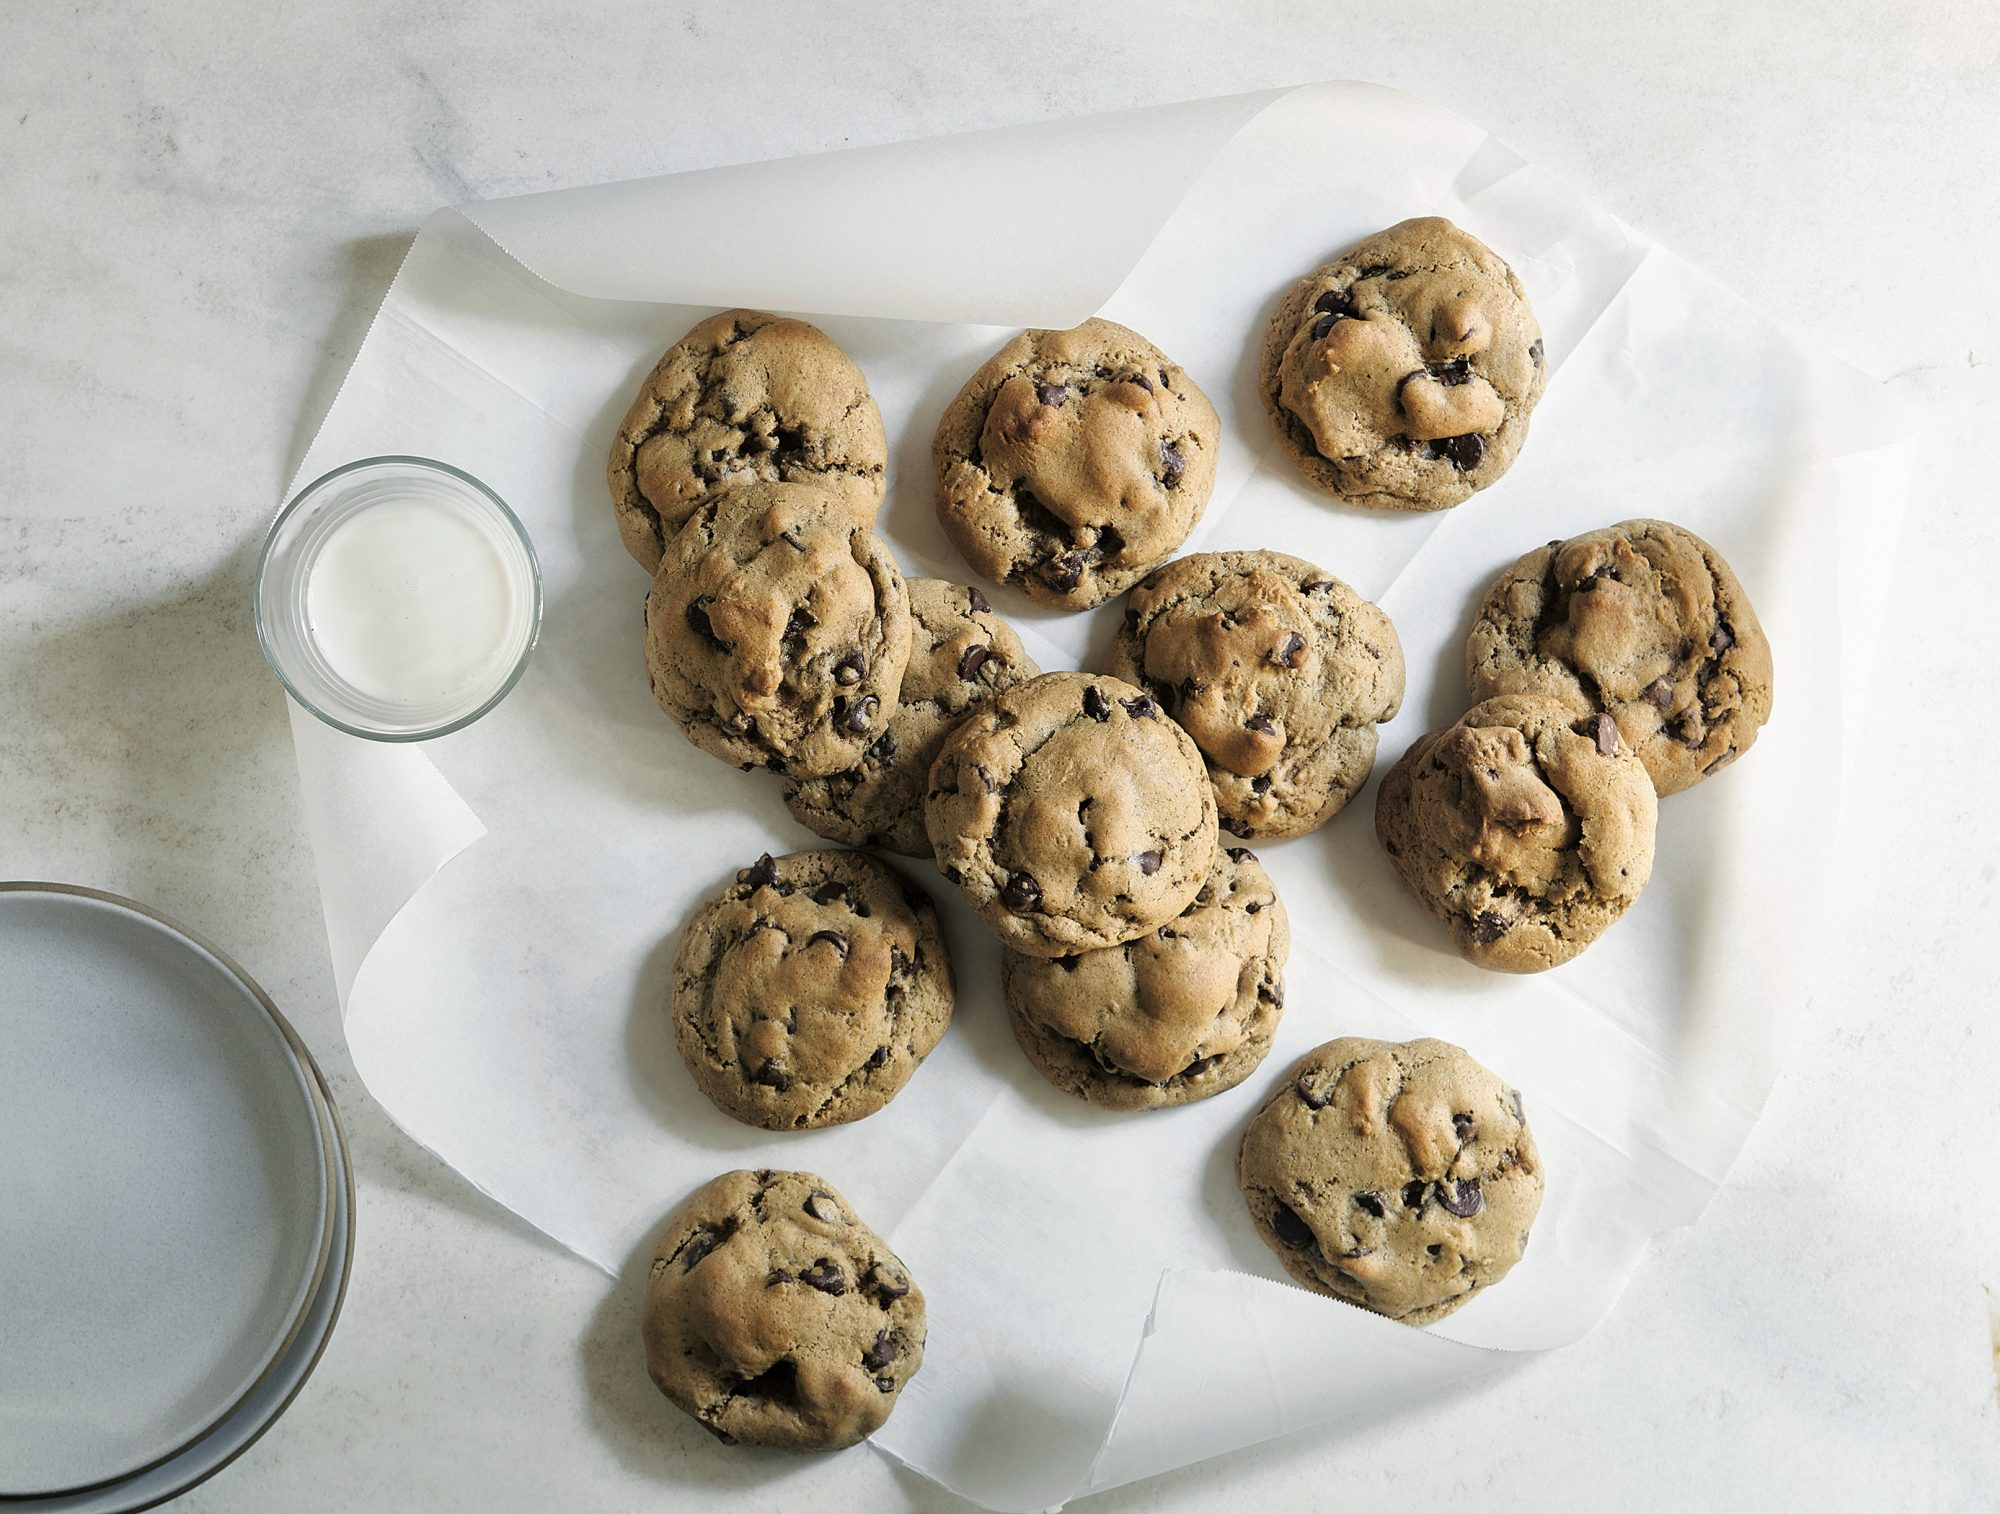 Joanna Gaines Wishes You Would Cut Back on This One Ingredient in Chocolate Chip Cookies